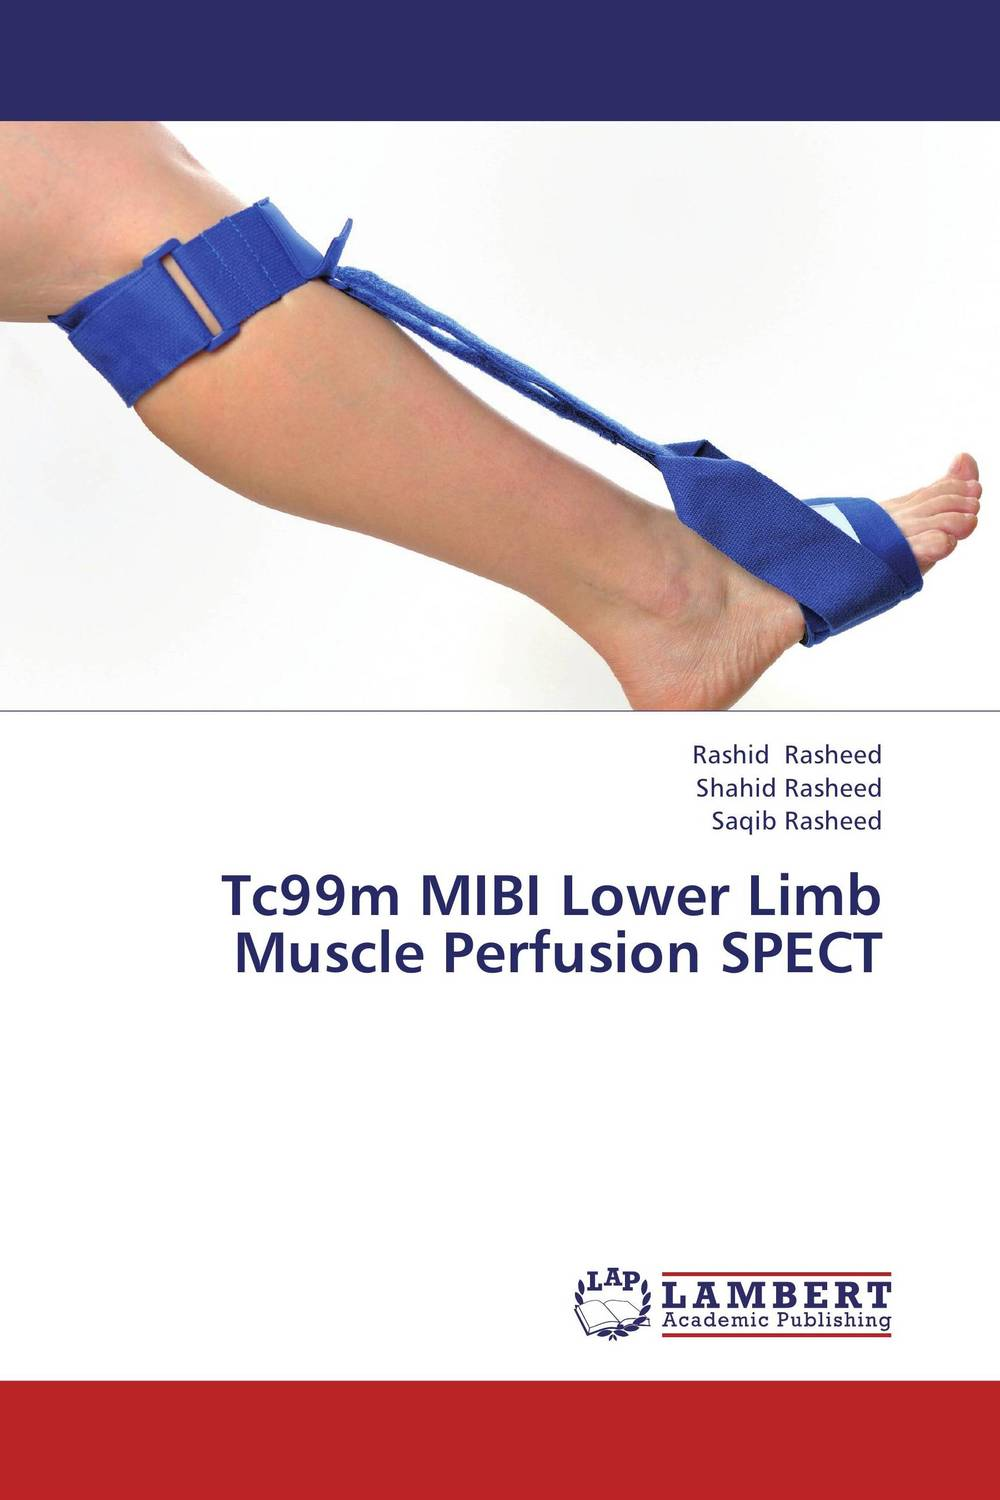 Tc99m MIBI Lower Limb Muscle Perfusion SPECT clinical significance of electro diagnosis in disc herniation